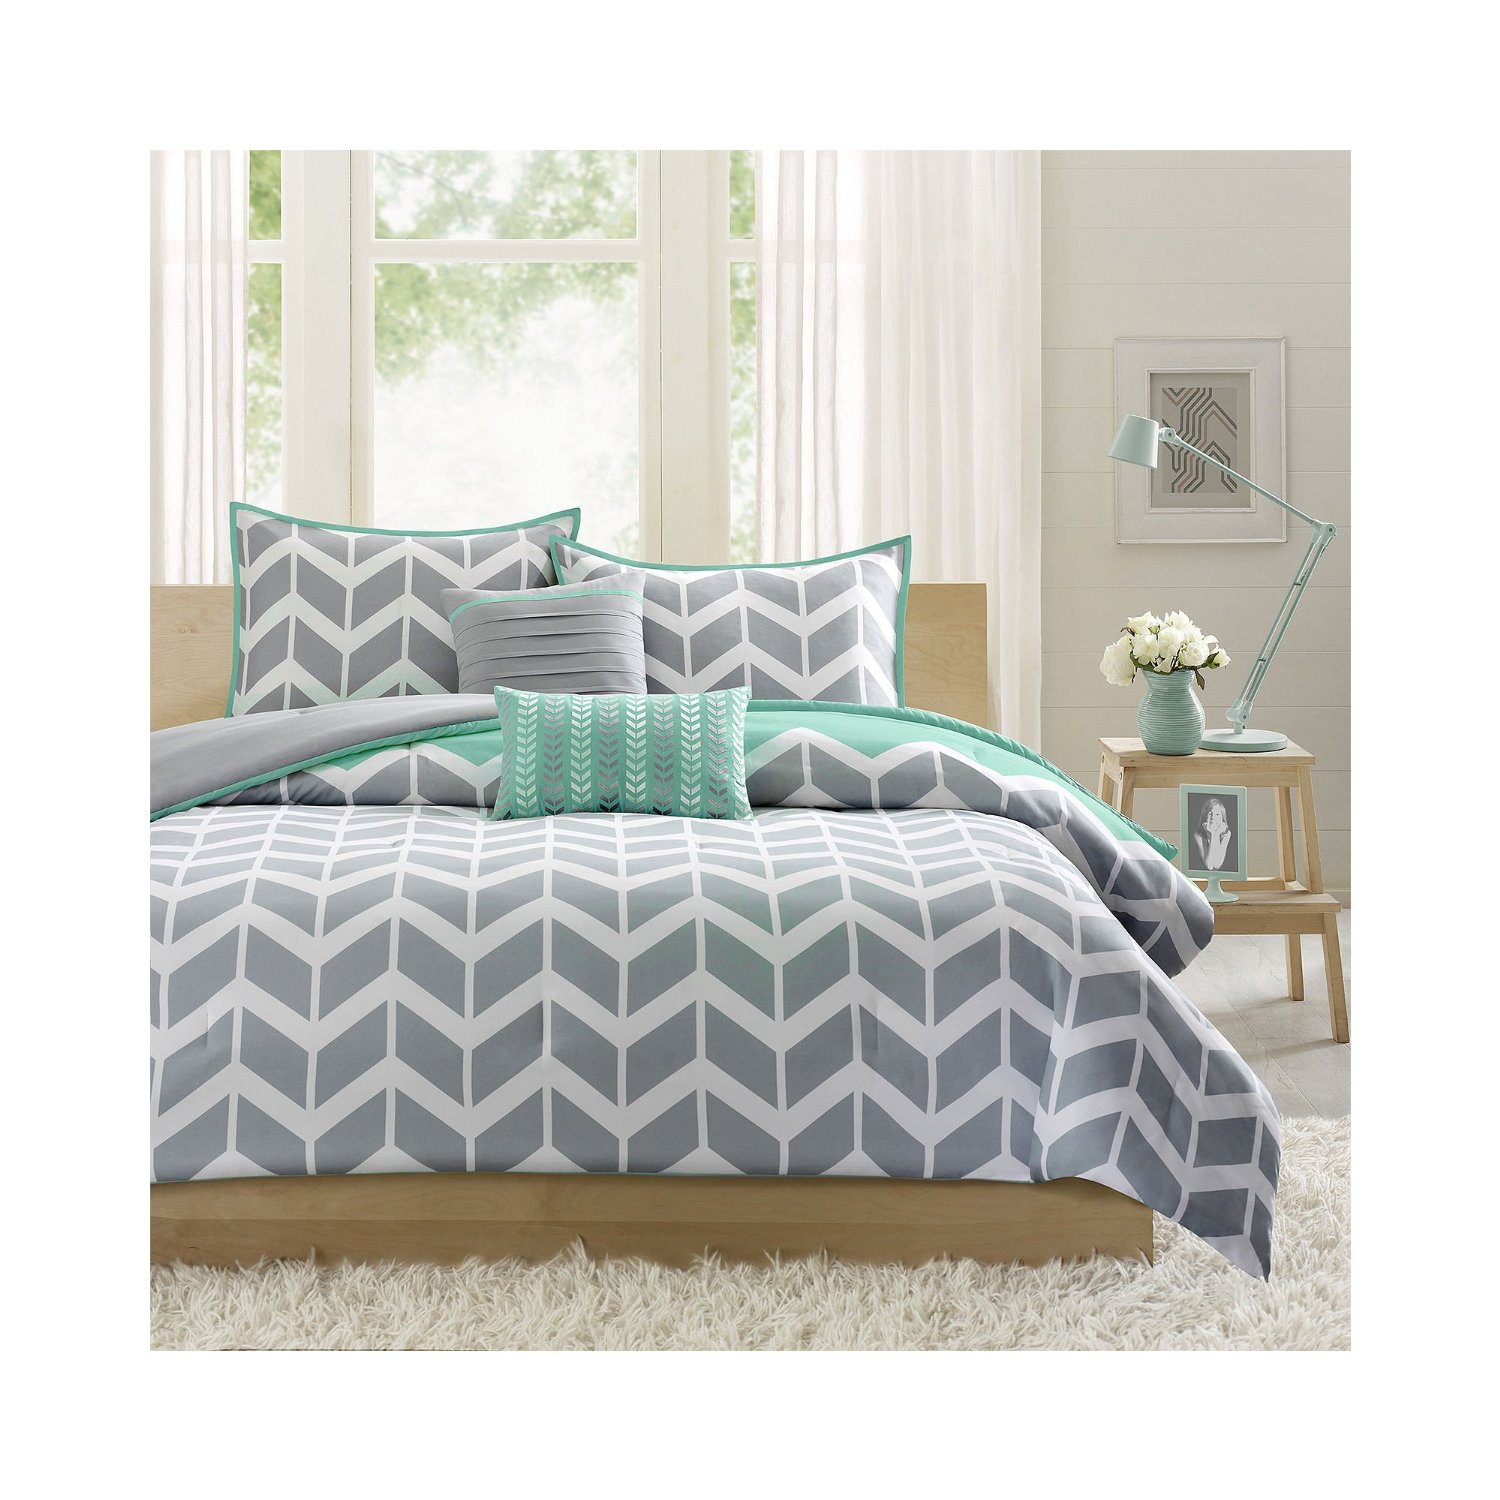 bedding size set pce and king twin queen comforter white grey chevron cal